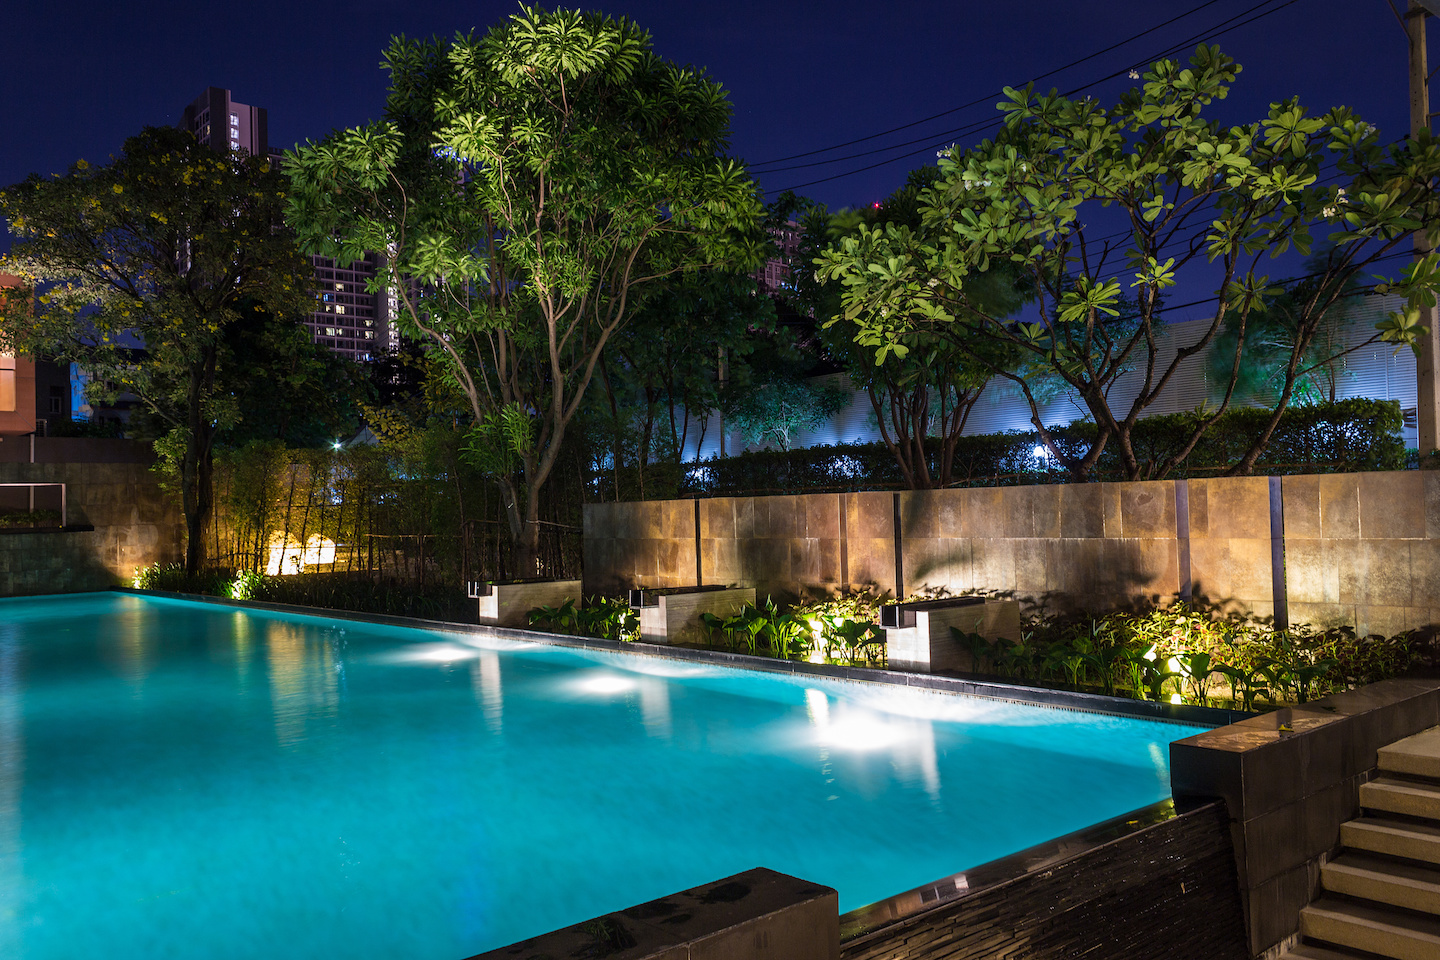 Garden Lighting integrated with Swimming pool landscaping design.